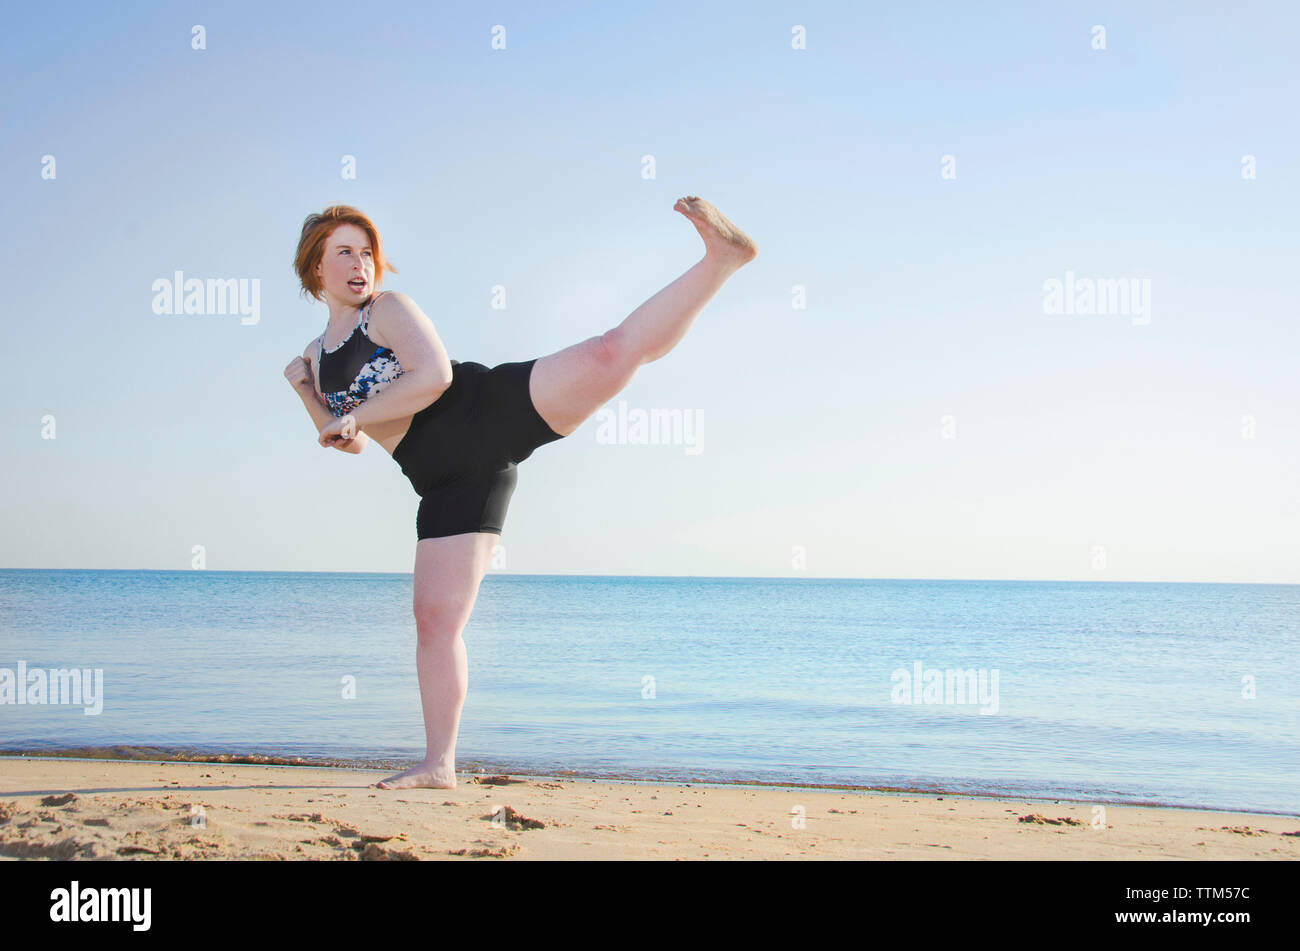 Woman practicing kickboxing at beach against clear sky - Stock Image